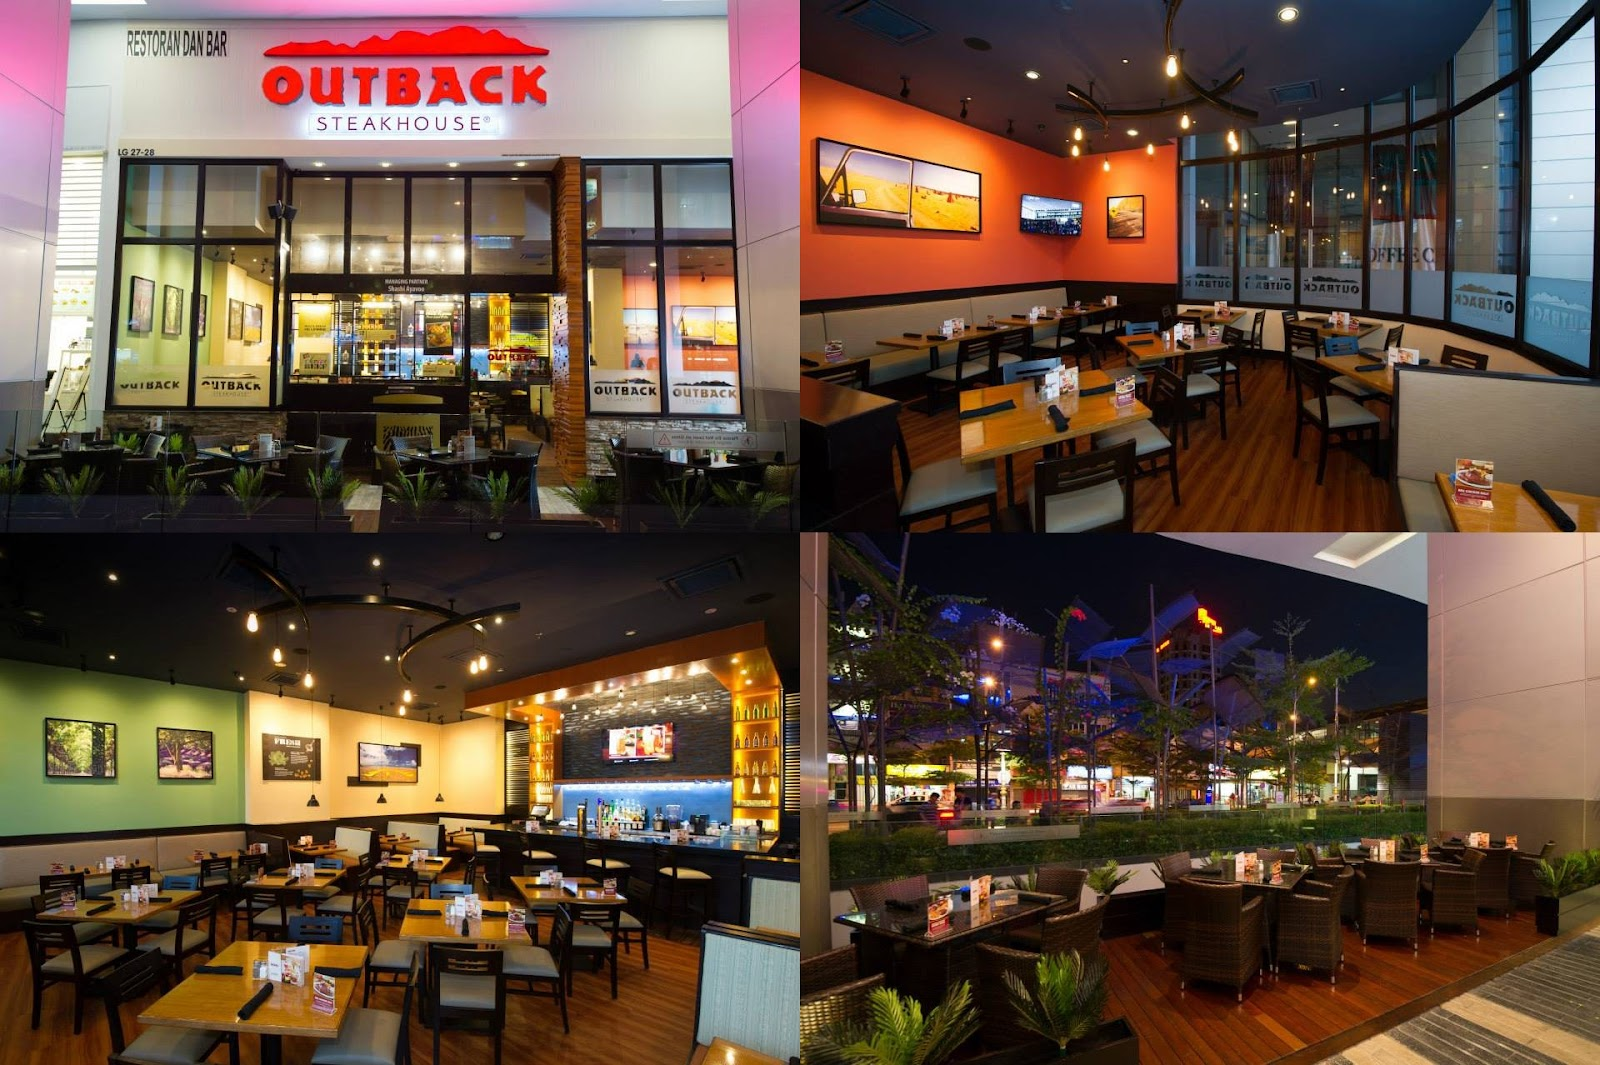 About Outback Steakhouse Shrimp, steak, and chicken from the barbie is better at Outback Steakhouse. Save on your next Aussie-inspired meal with Outback Steakhouse coupons.